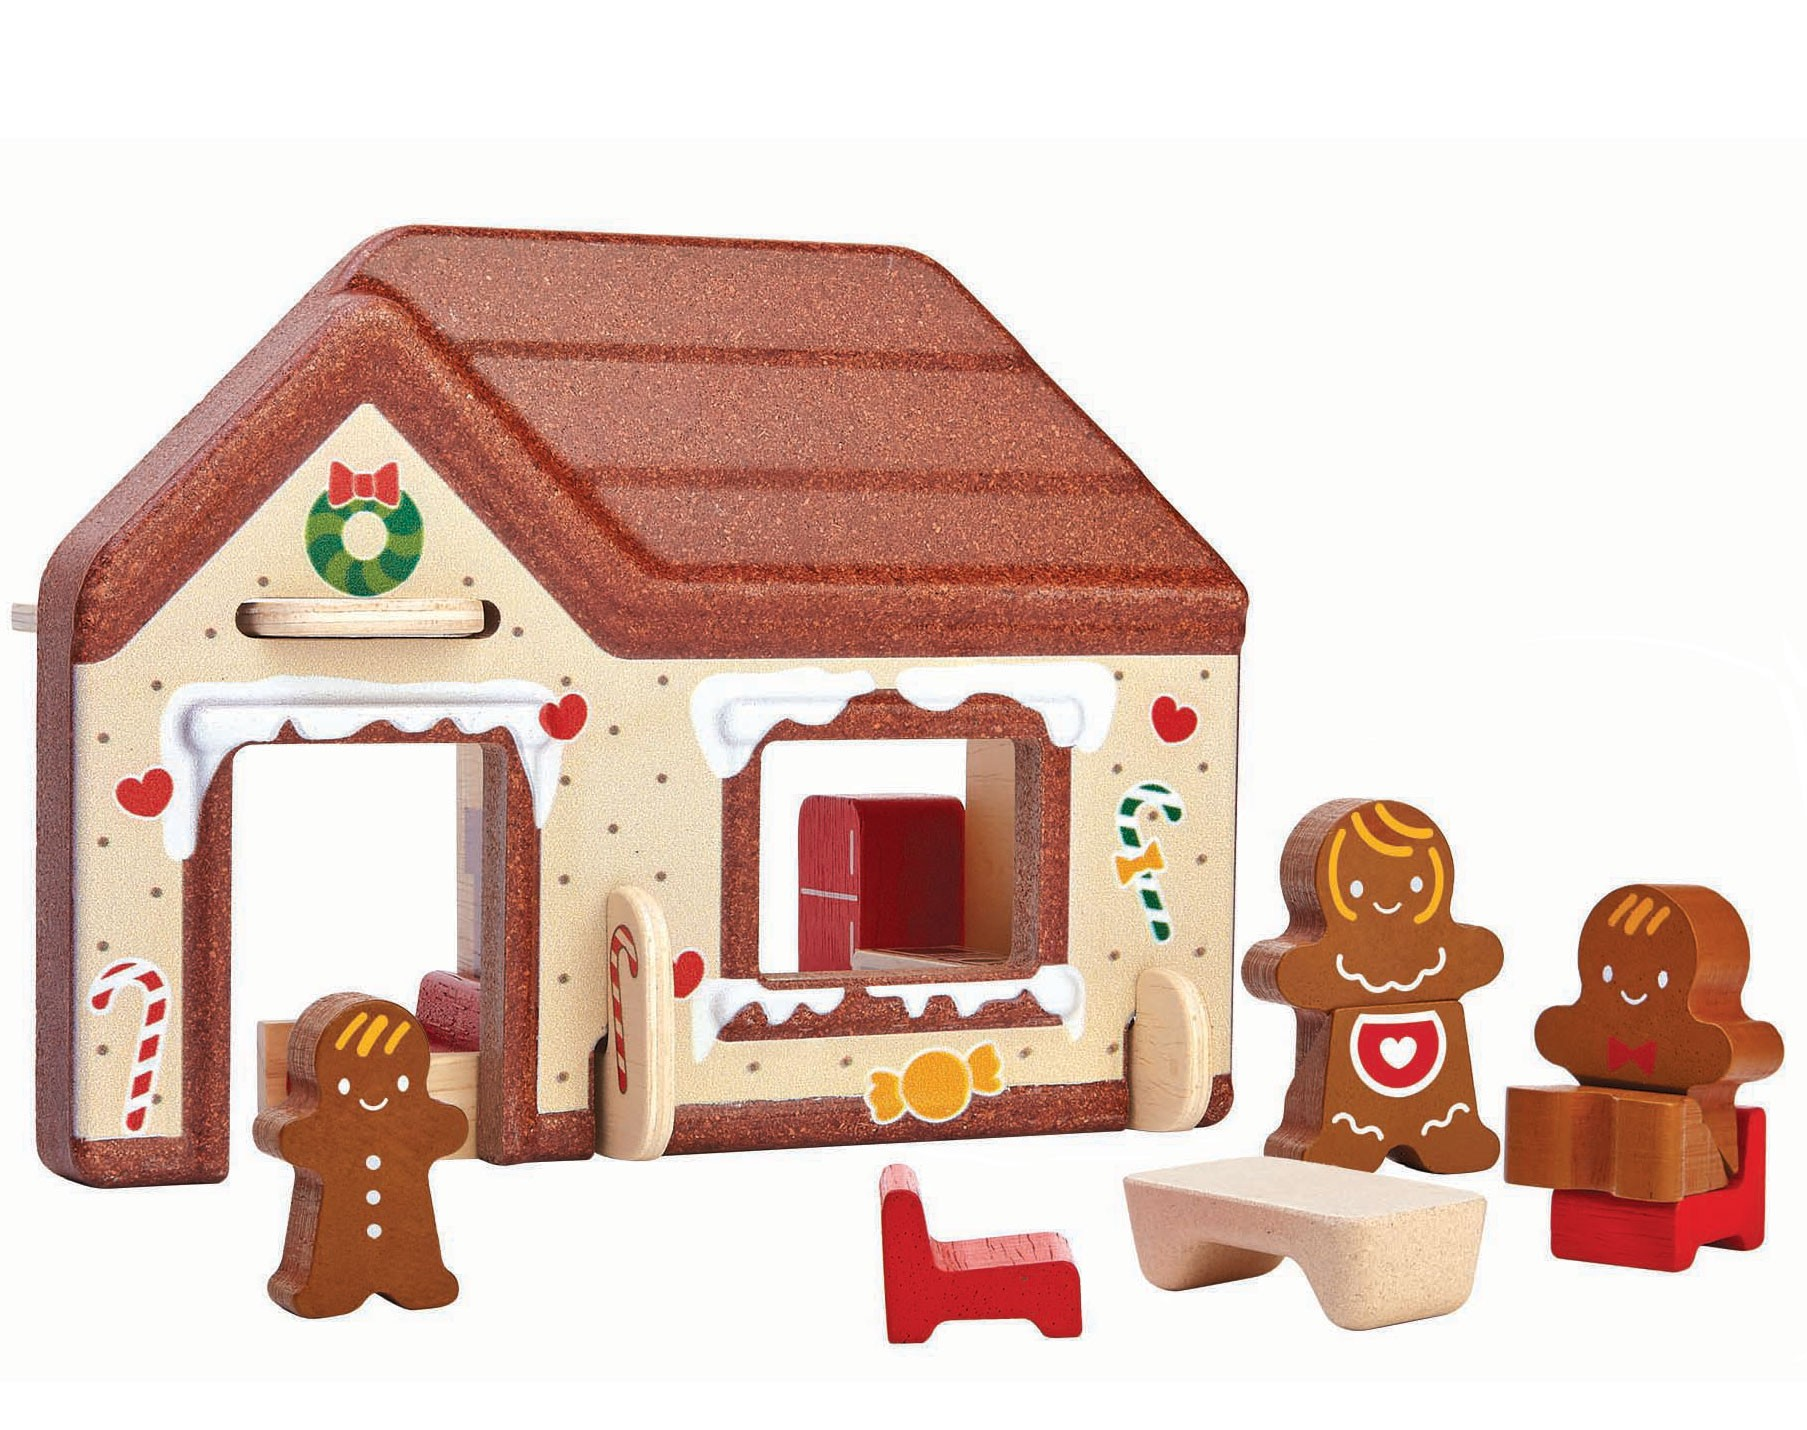 Plan toys gingerbread house for Gingerbread house floor plans